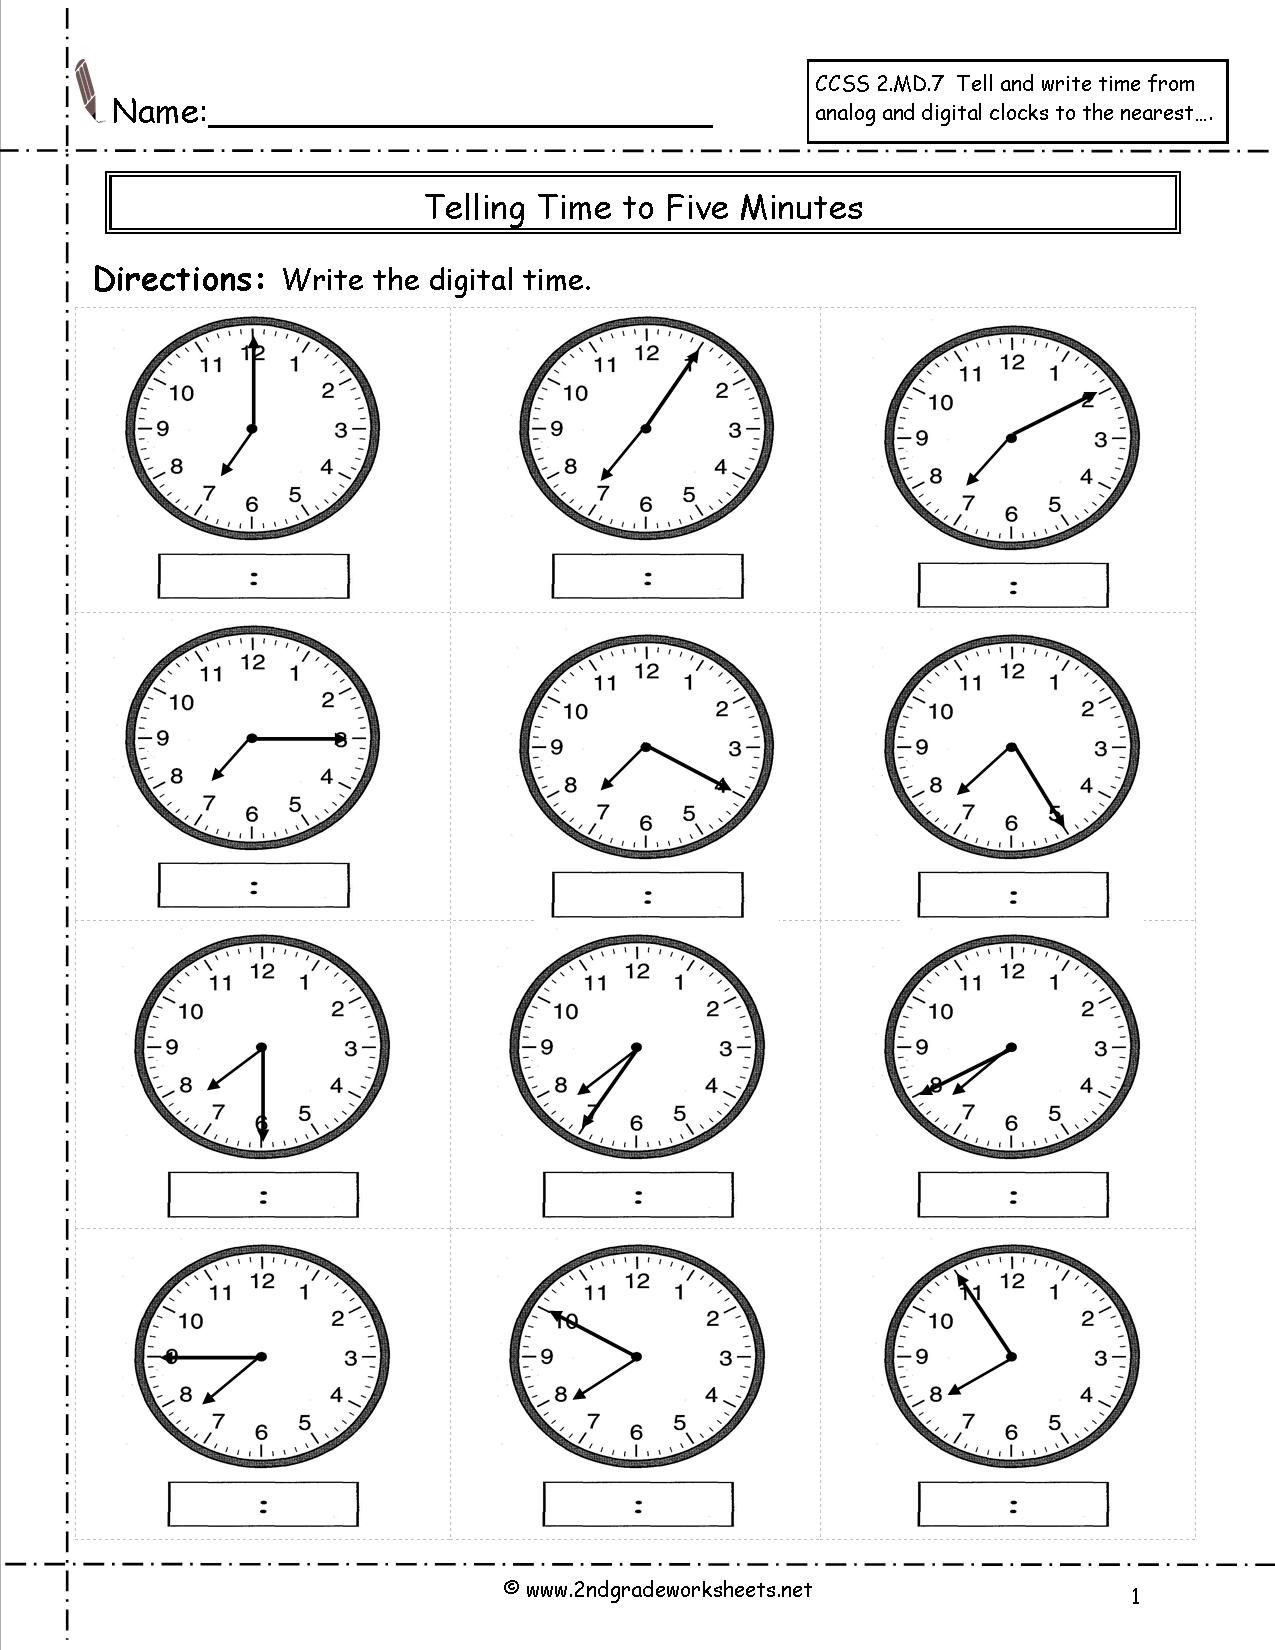 Elapsed Time Worksheets 3rd Grade Telling Time Worksheets 3rd Grade